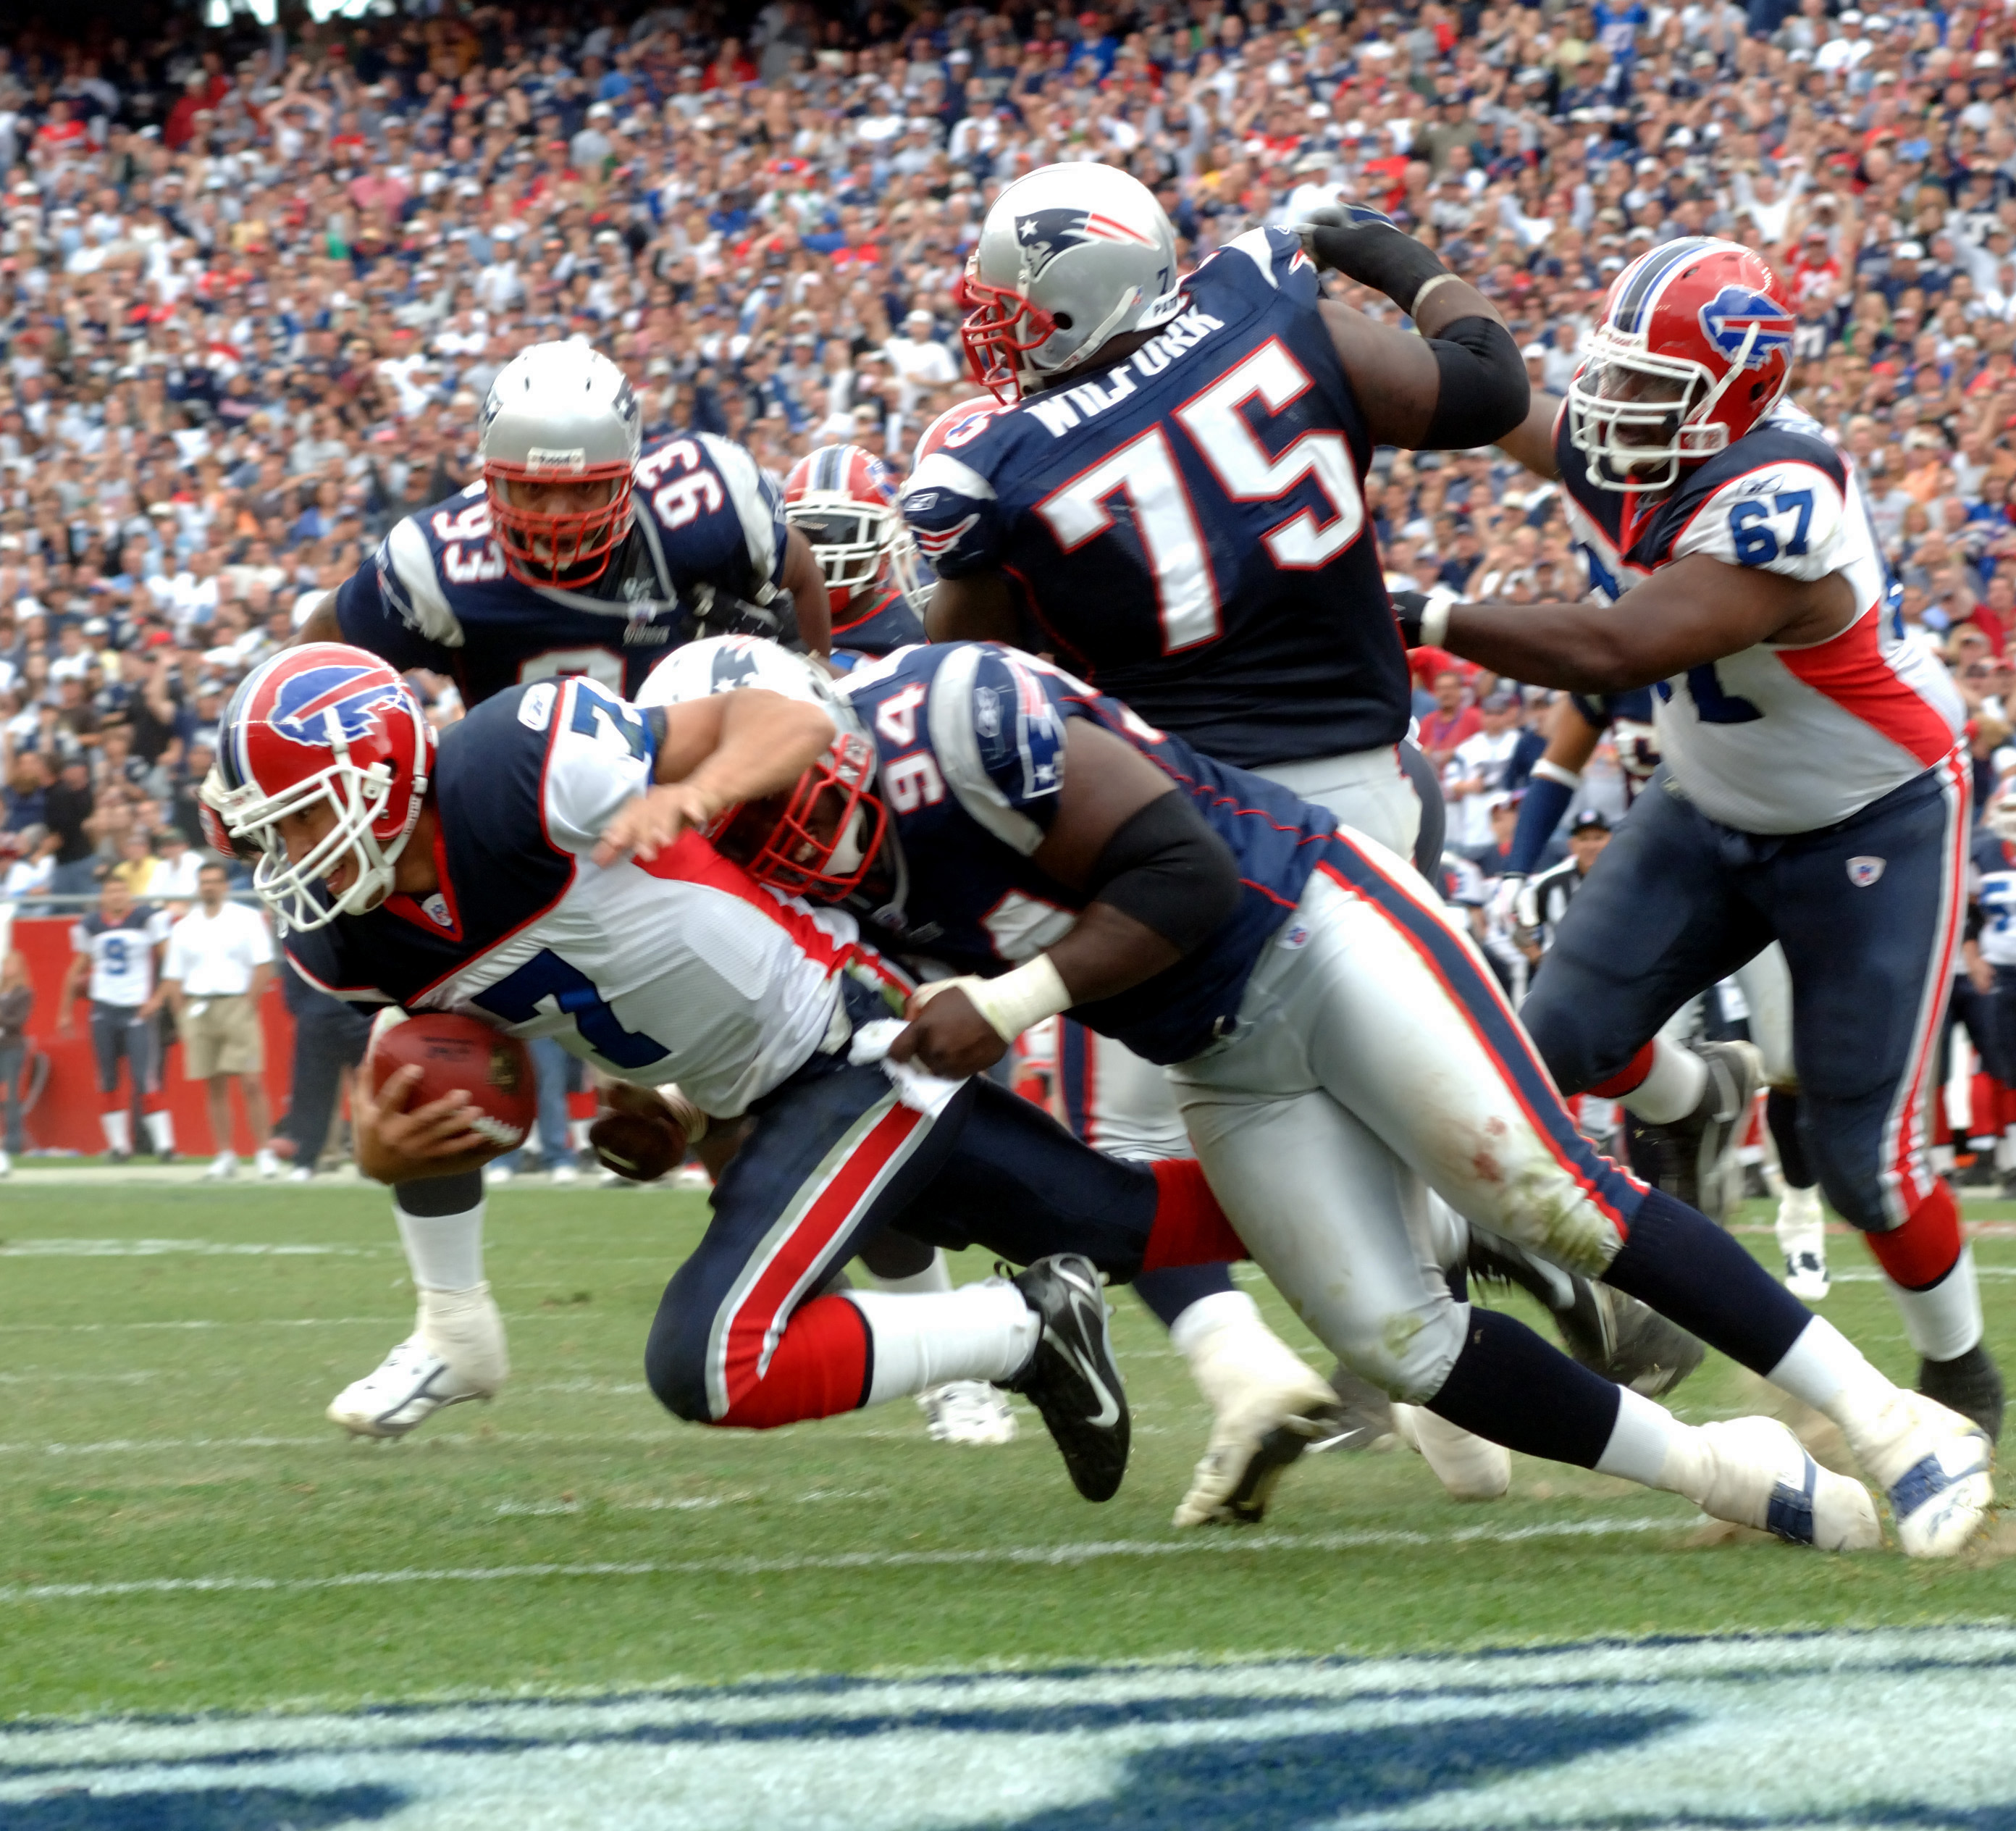 J.P._Losman_tackled_in_the_end_zone_by_T